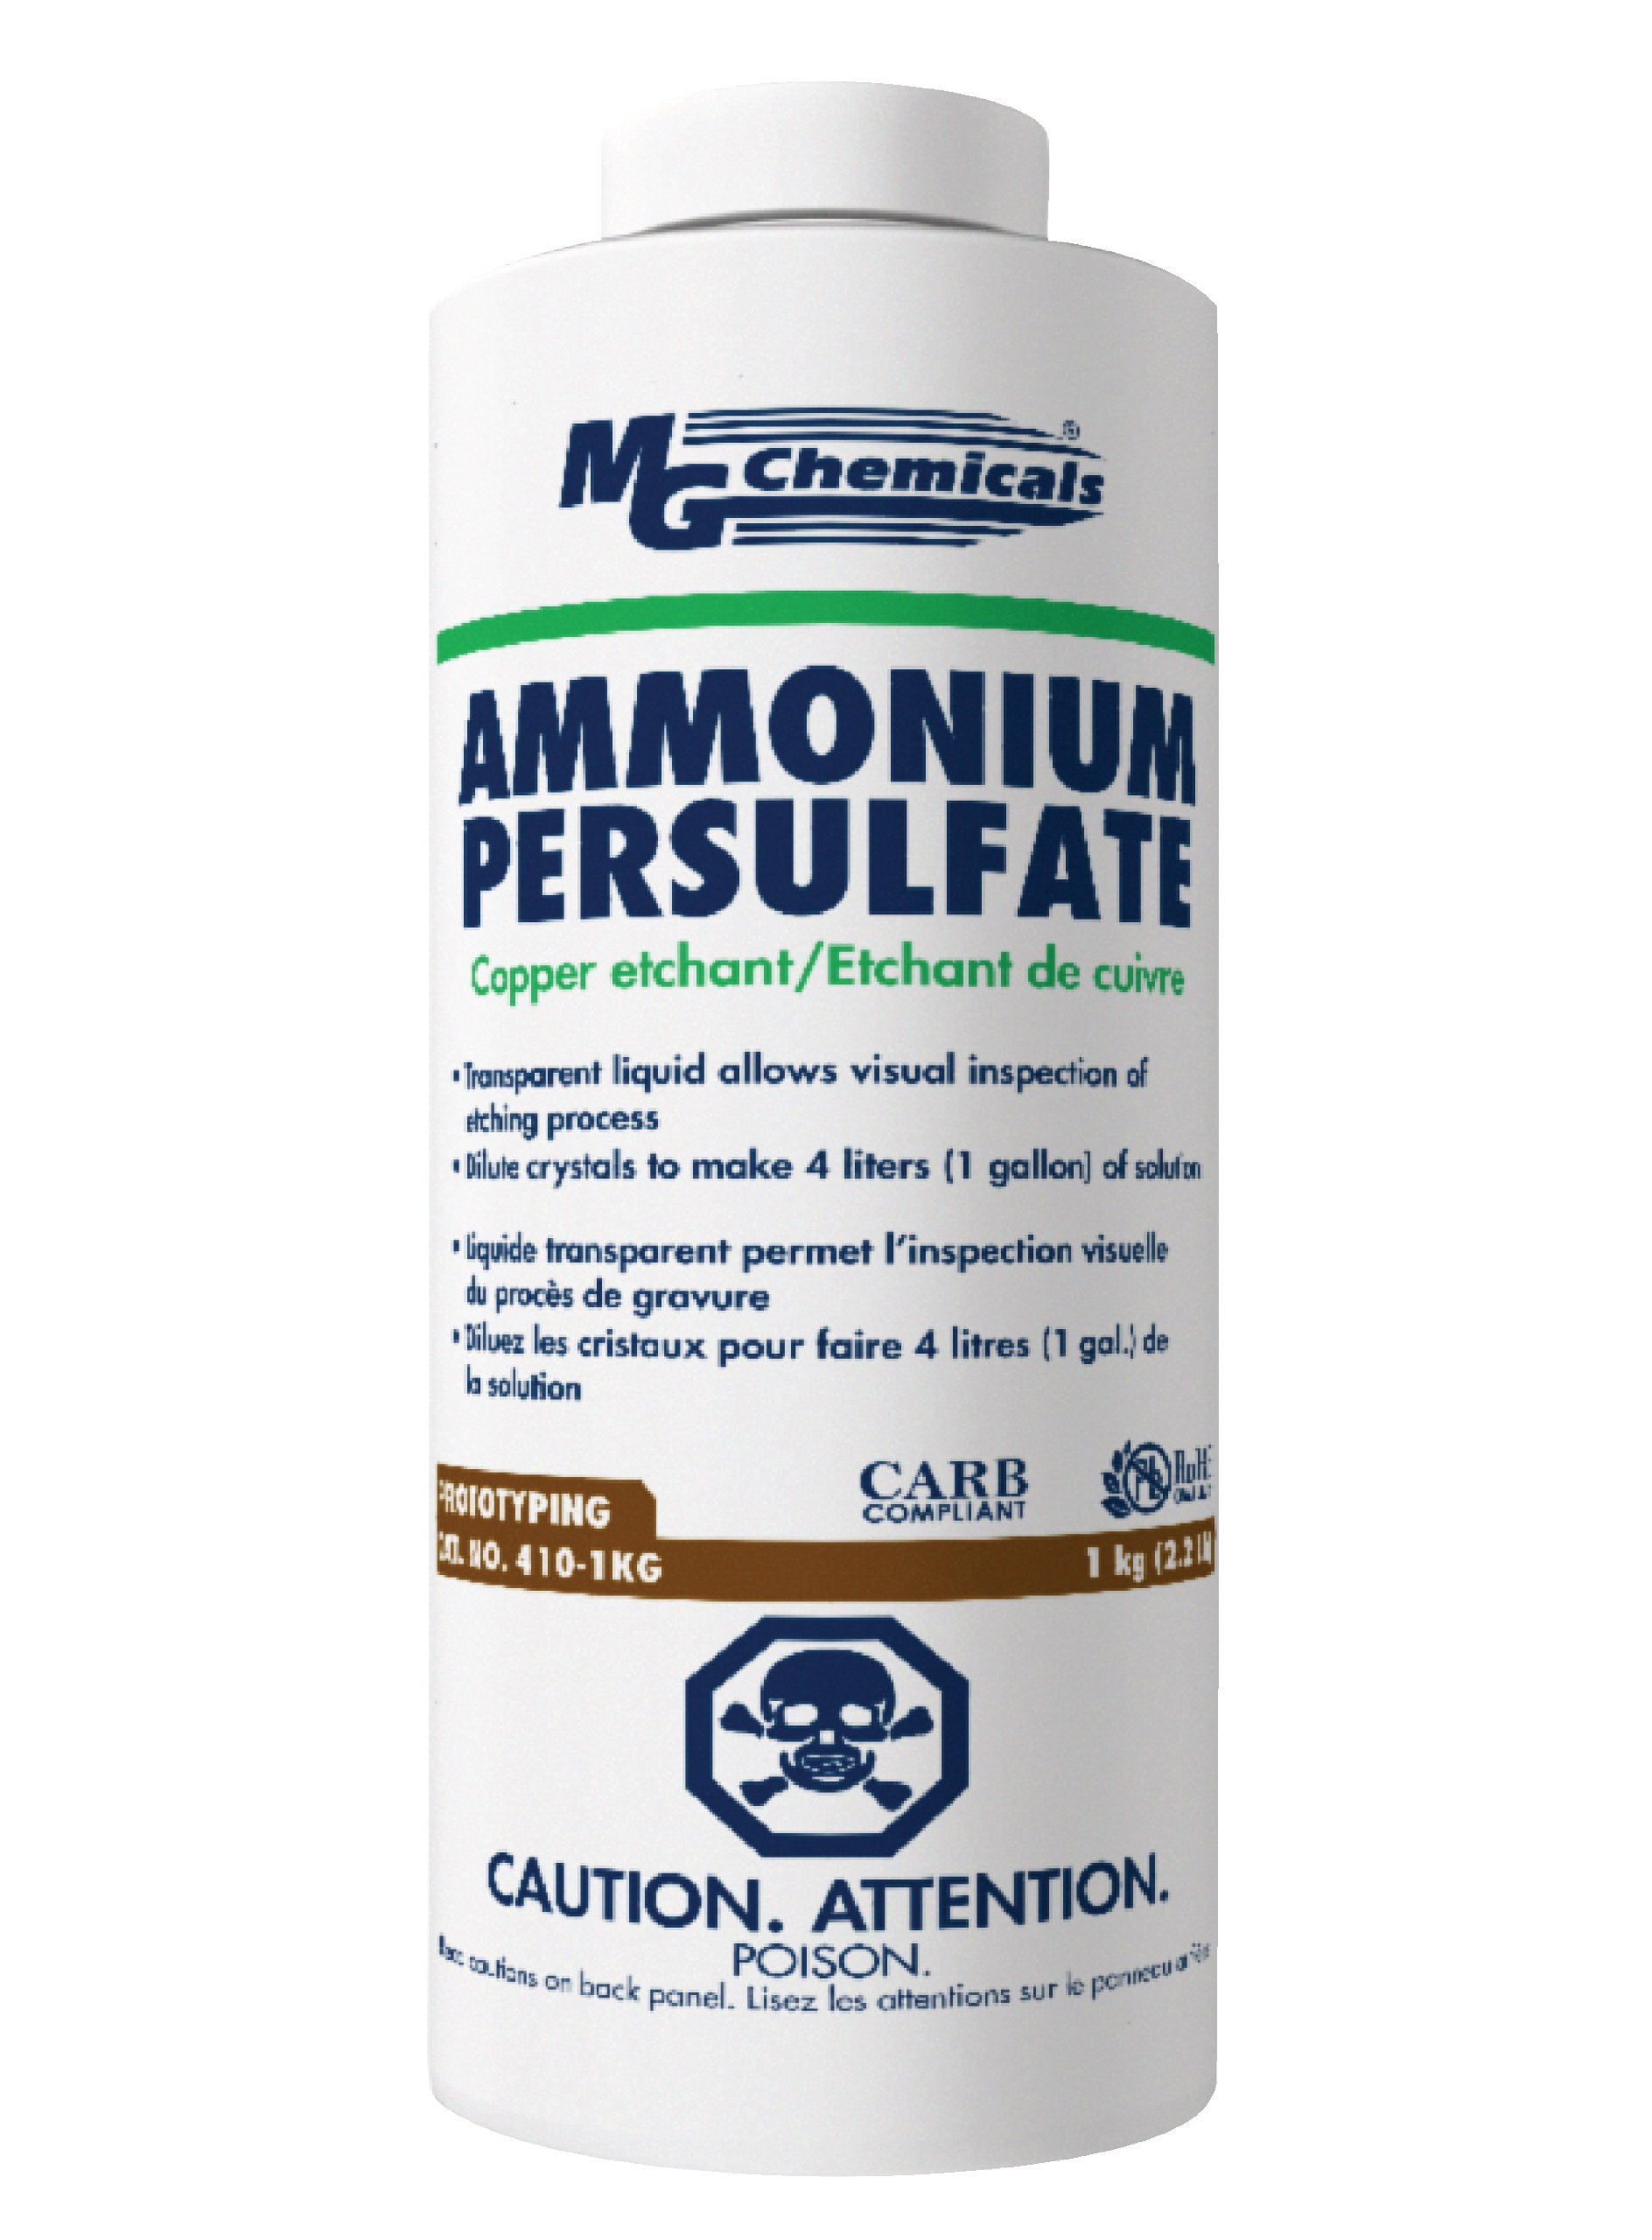 MG Chemicals 410-1KG Ammonium Persulphate Copper Etchant, 1 Kg Solid Crystals Bottle